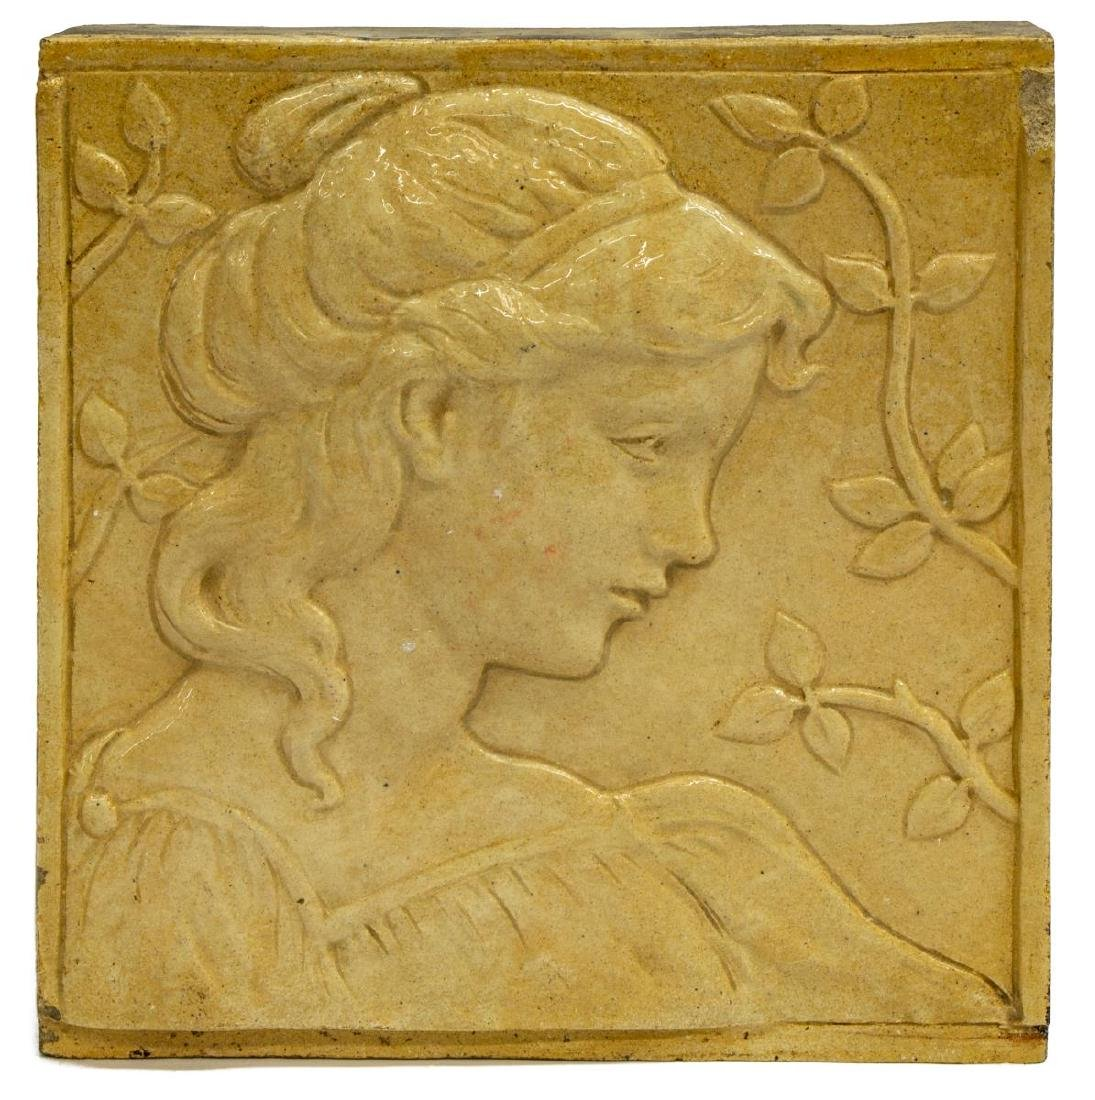 ART NOUVEAU STYLE GLAZED TILE, PROFILE OF A BEAUTY